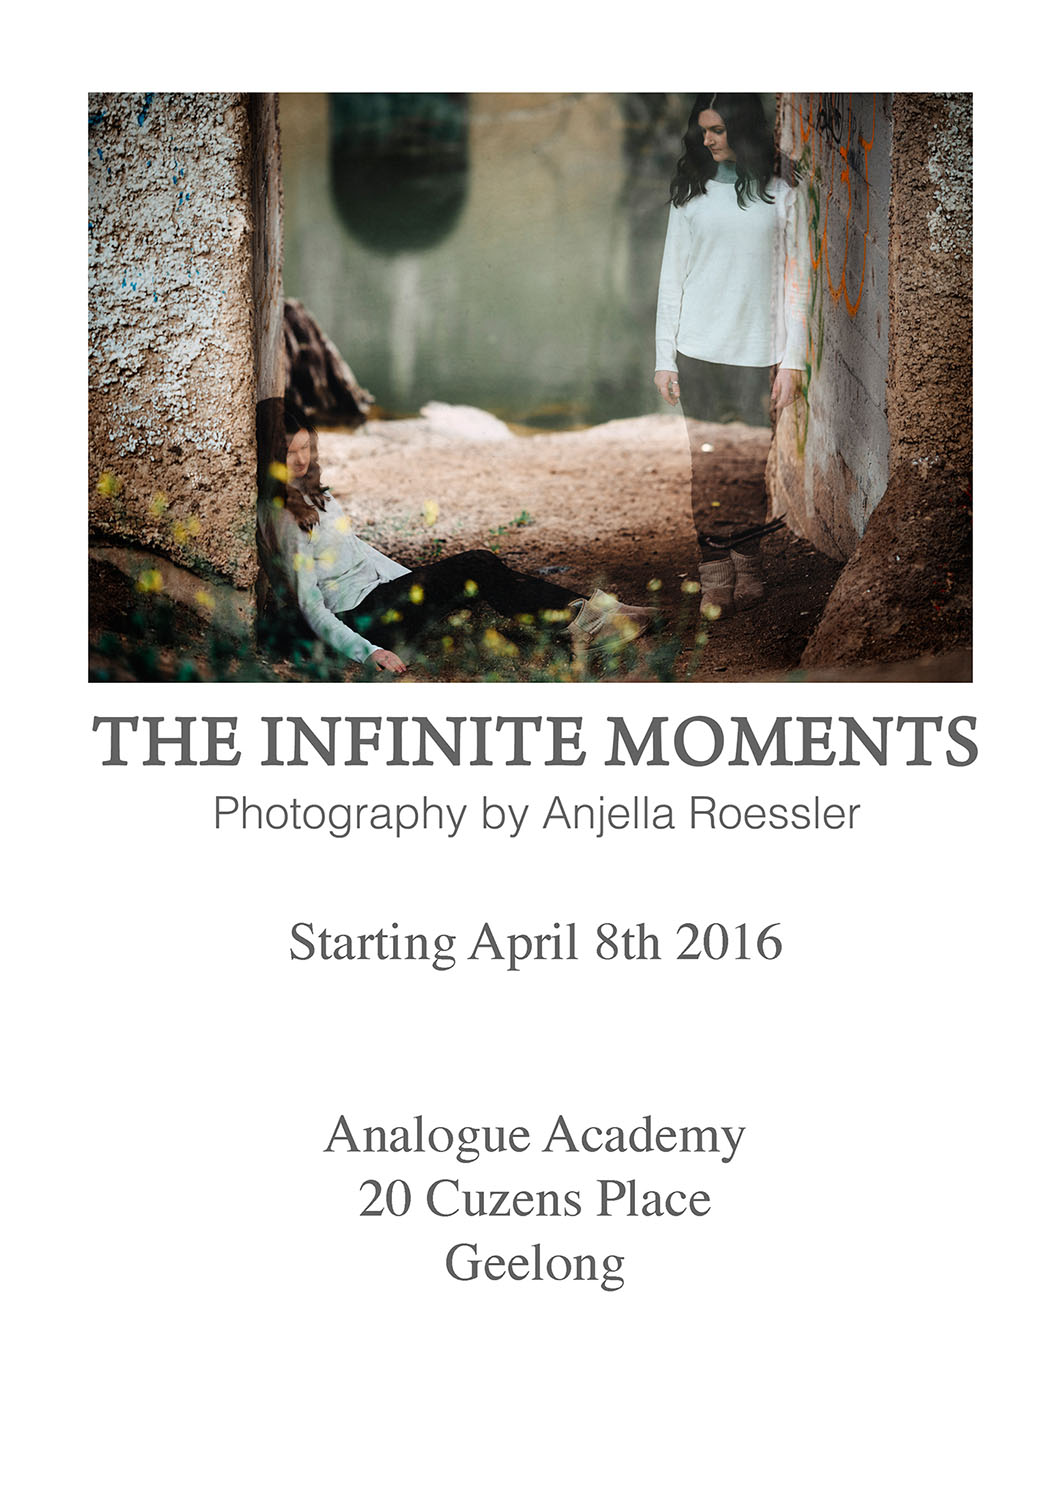 The Infinite Moments exhibition is on for a month at Analogue Academy, Geelong. Let me know what you think!